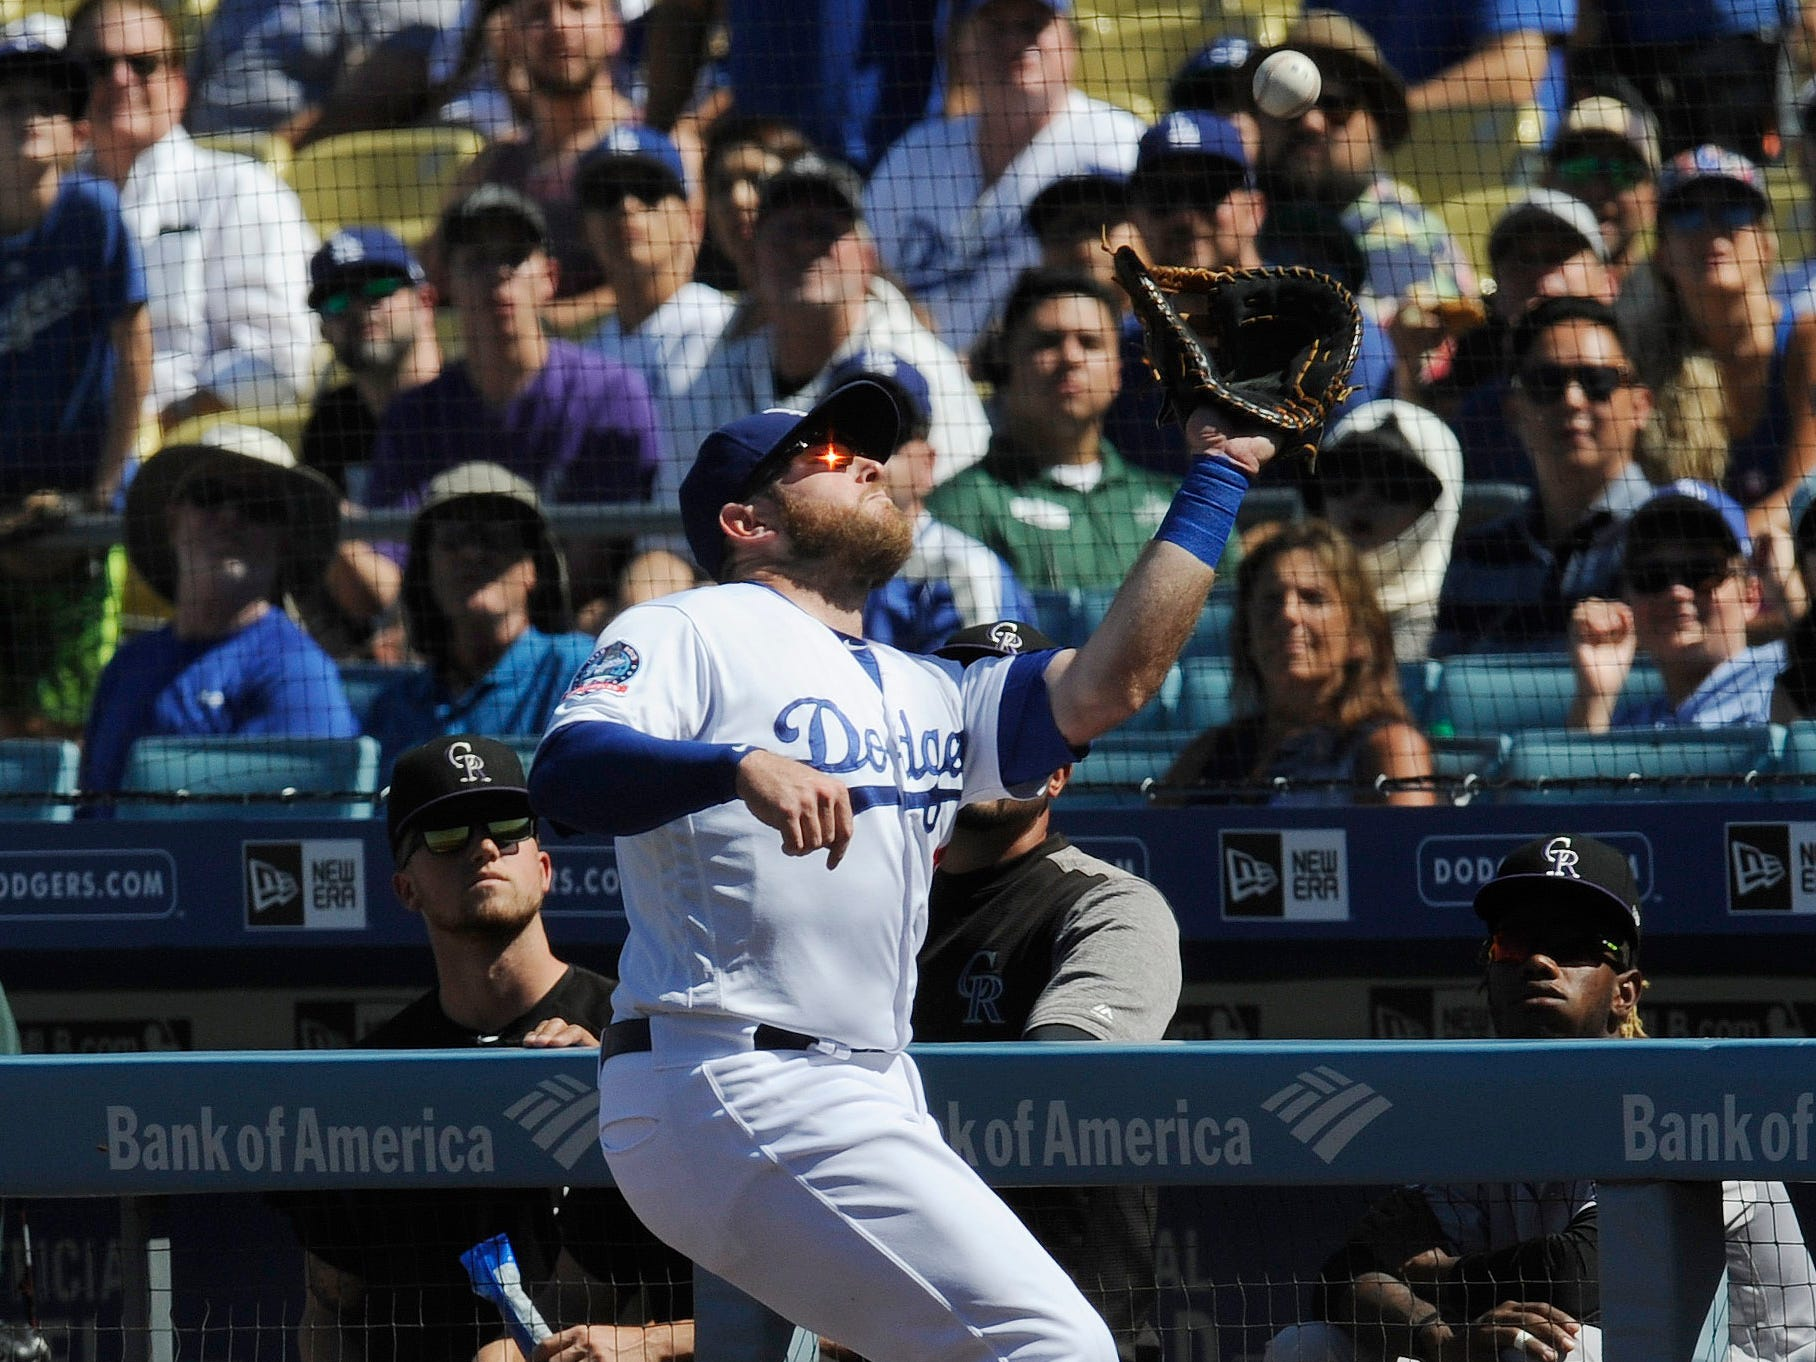 Dodgers first baseman Max Muncy makes a catch in foul territory in the second inning.